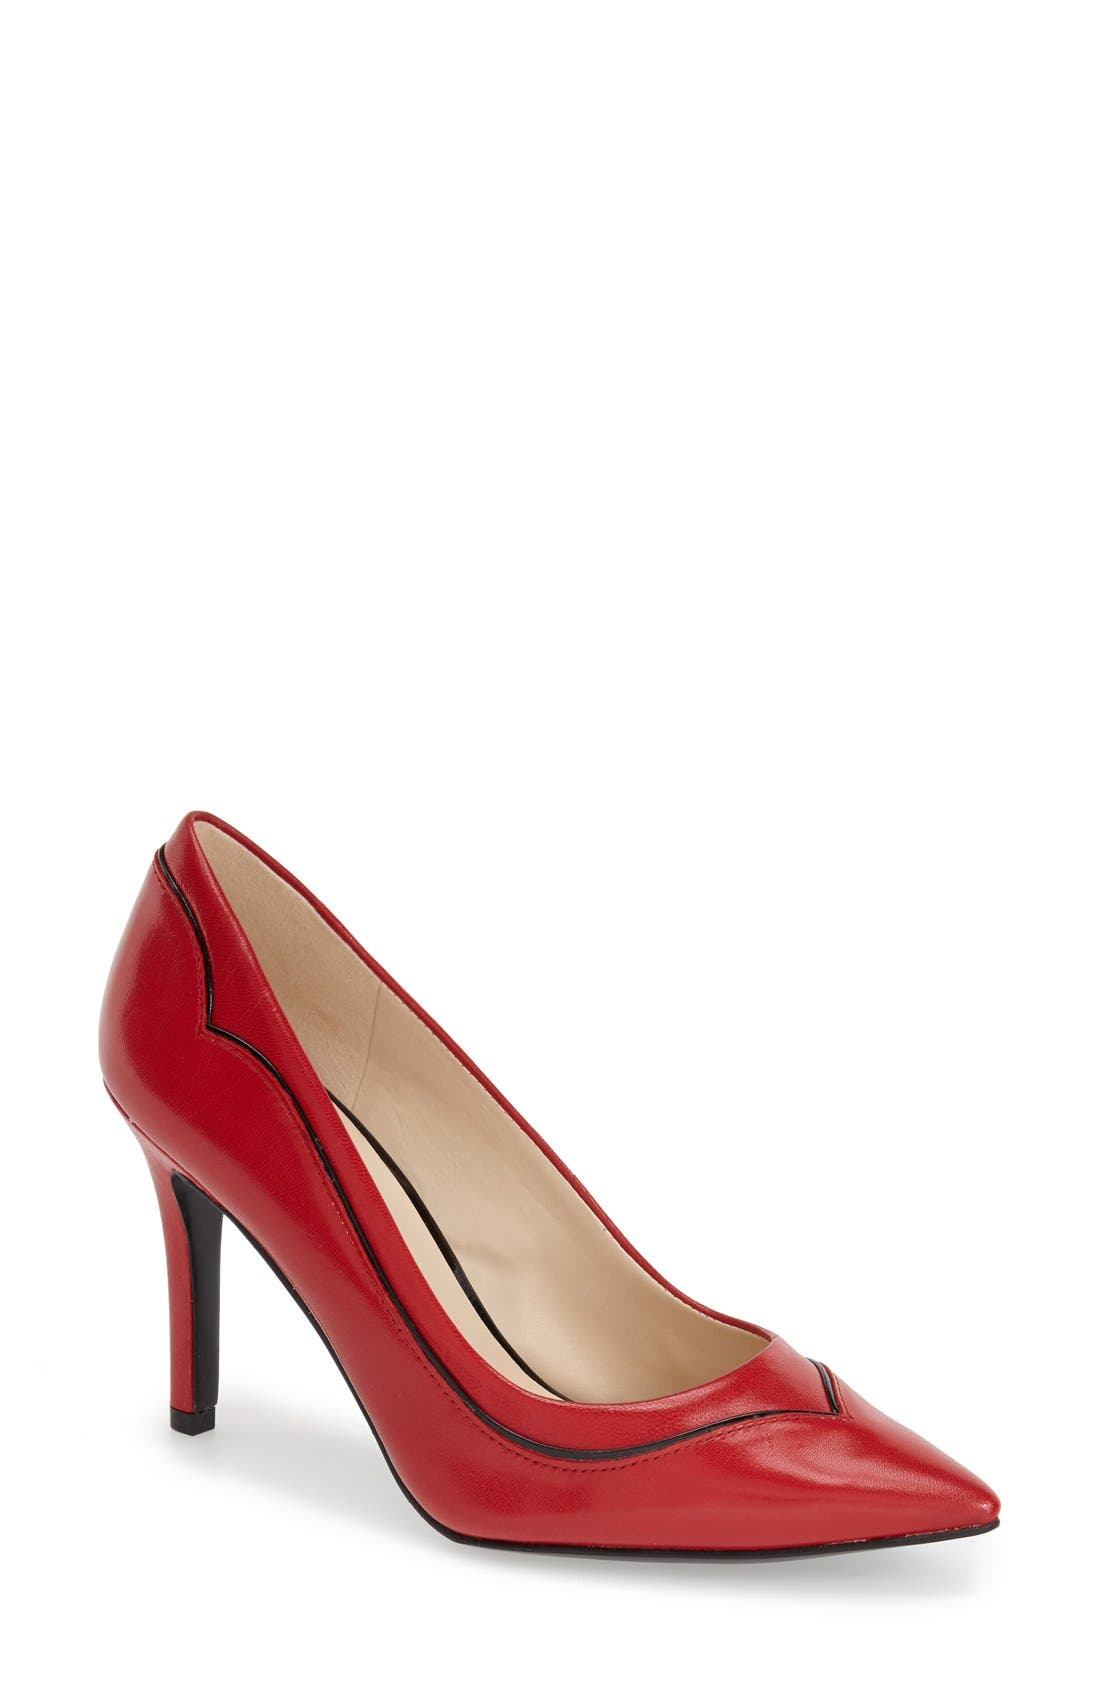 Alternate Image 1 Selected - Nine West 'Jet Plane' Pointy Toe Pump (Women)